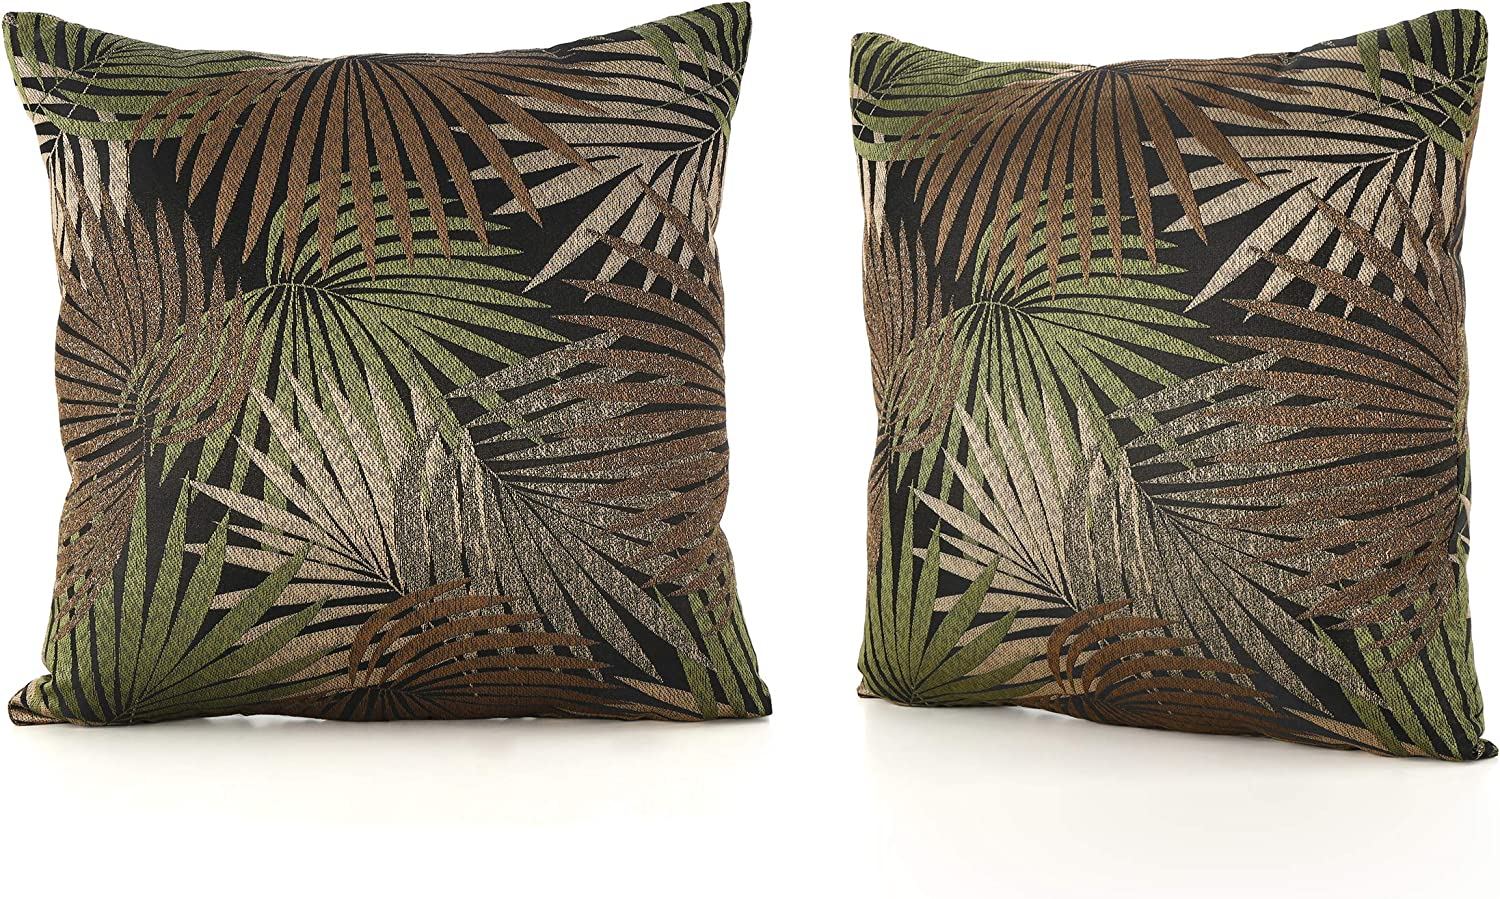 Christopher Knight Home Coronado Outdoor Square Water Resistant Pillows, 2-Pcs Set, Tropical Black